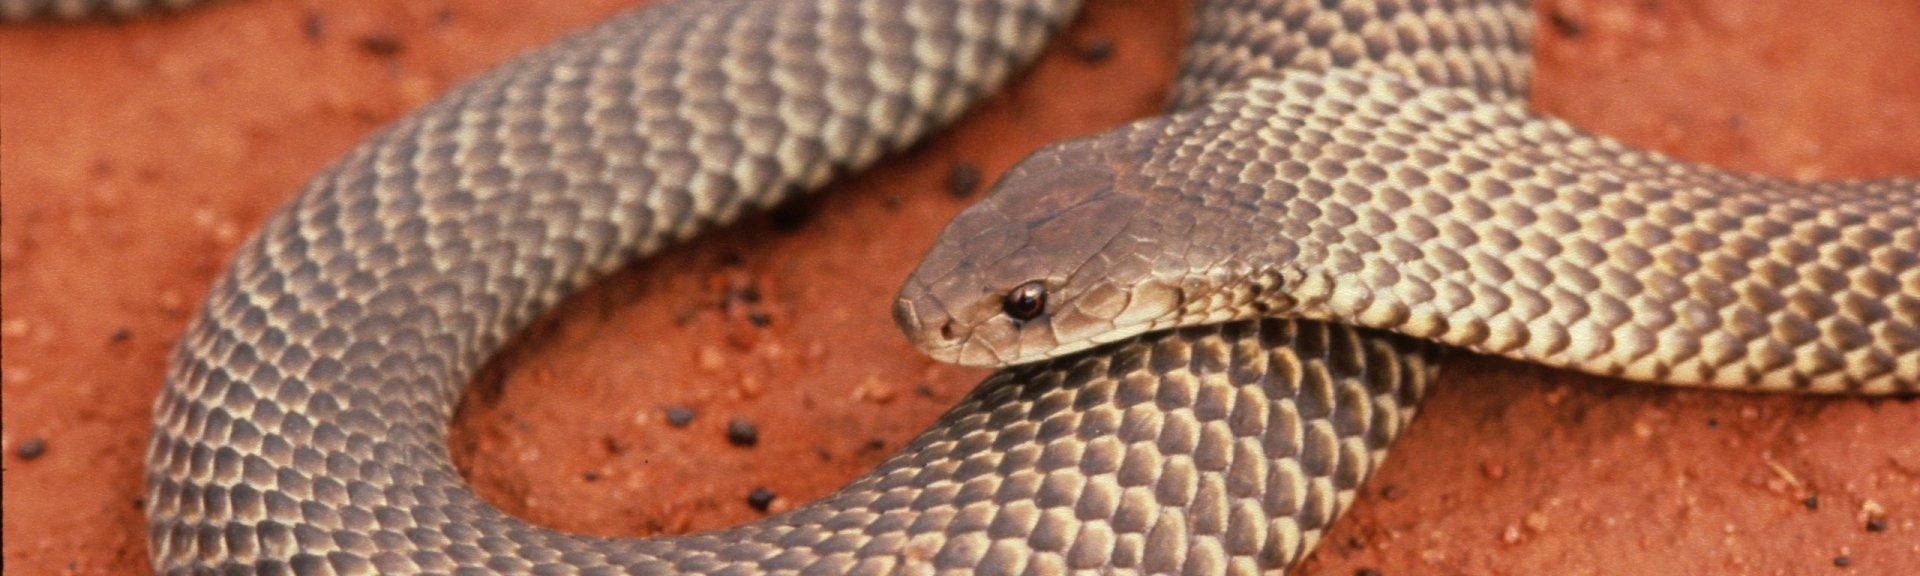 King brown snake. Photo: Stanley Breeden